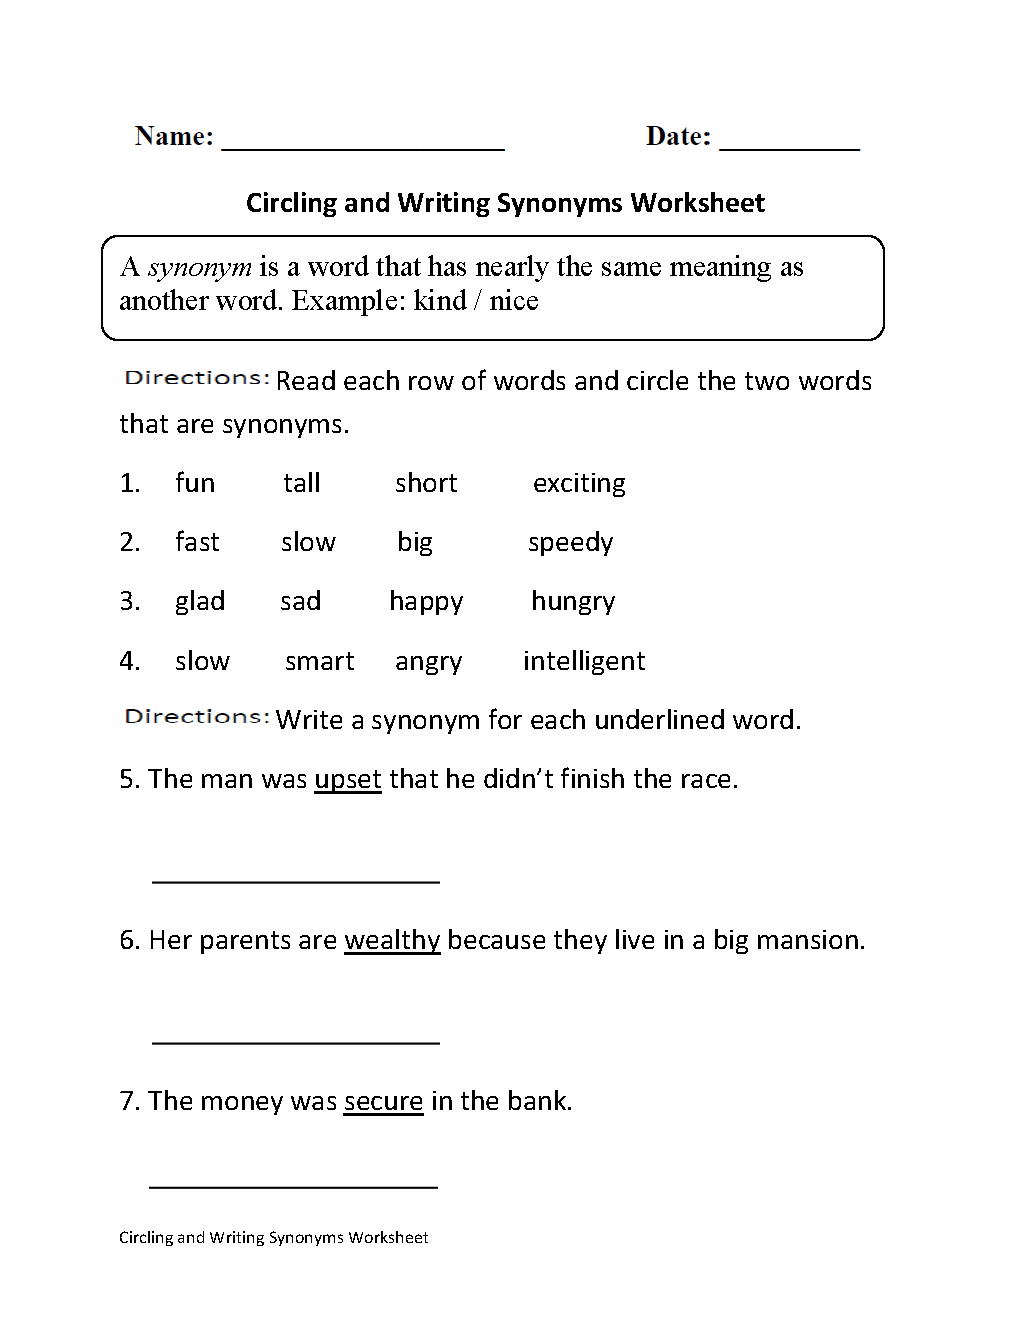 Worksheets Synonyms Worksheets englishlinx com synonyms worksheets